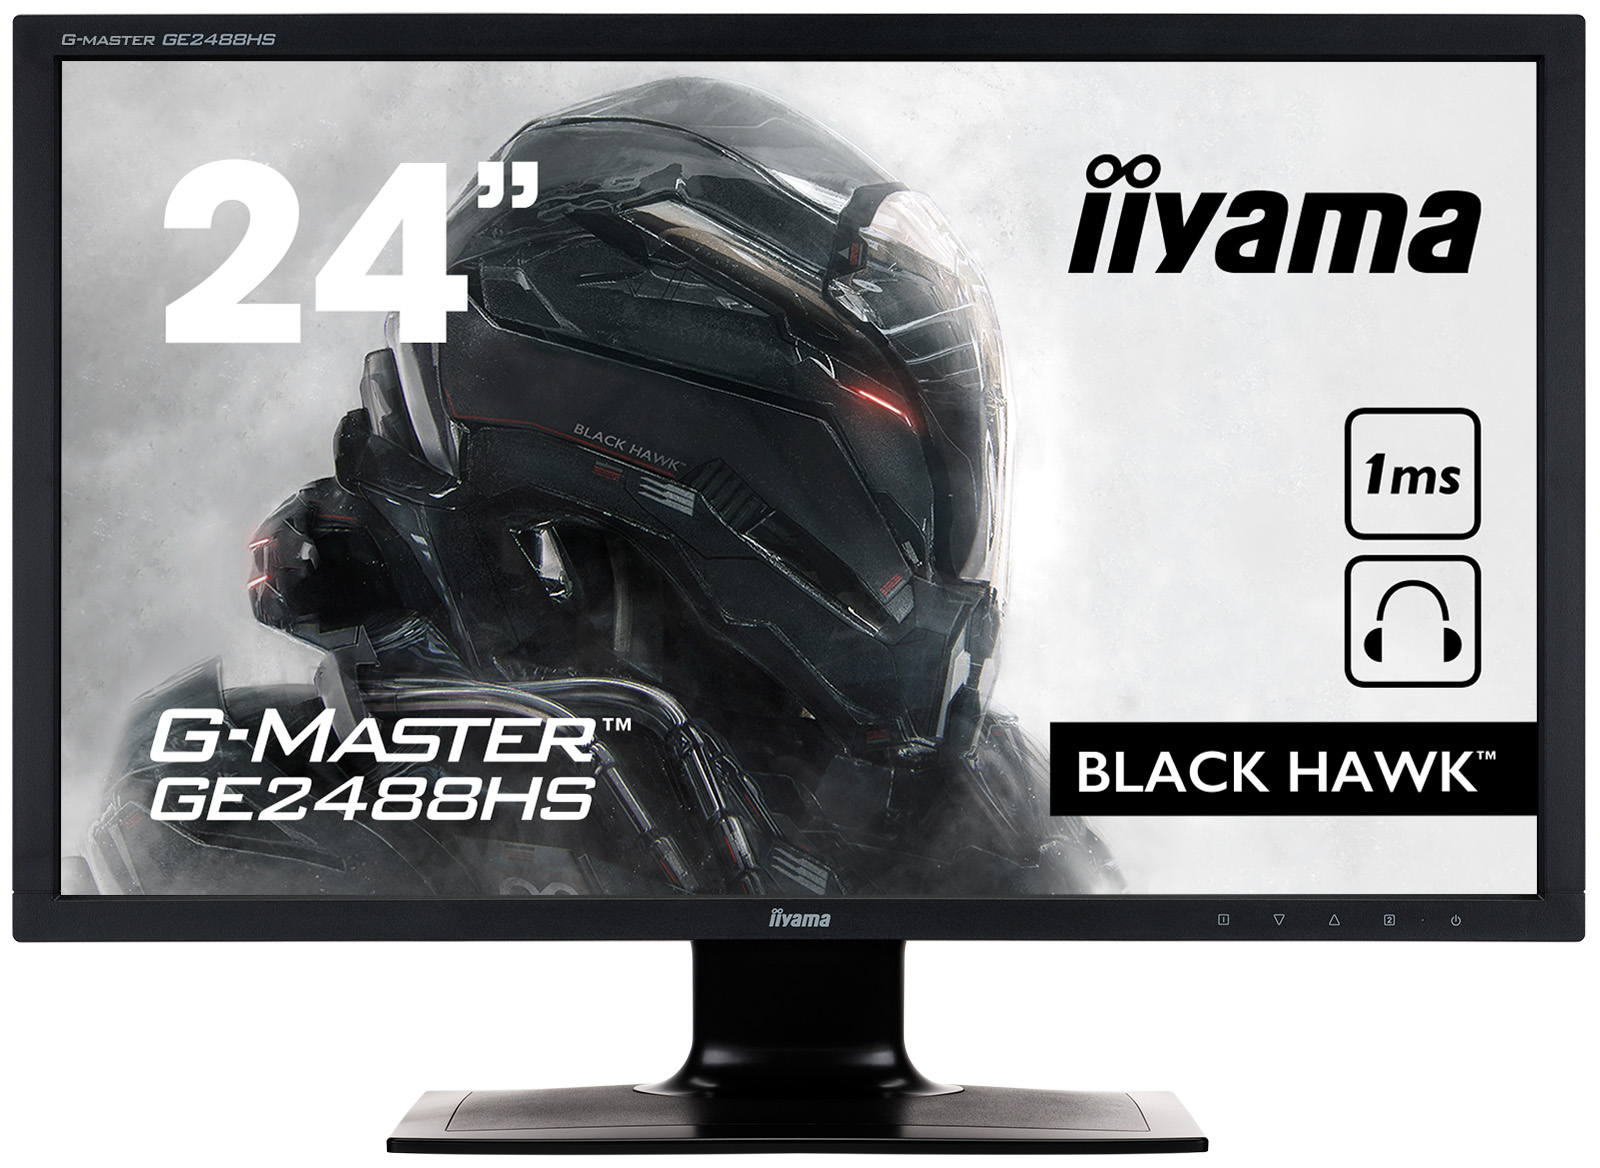 Monitor Iiyama G-Master Black Hawk GE2488HS 24inch 60Hz 1ms FreeSync